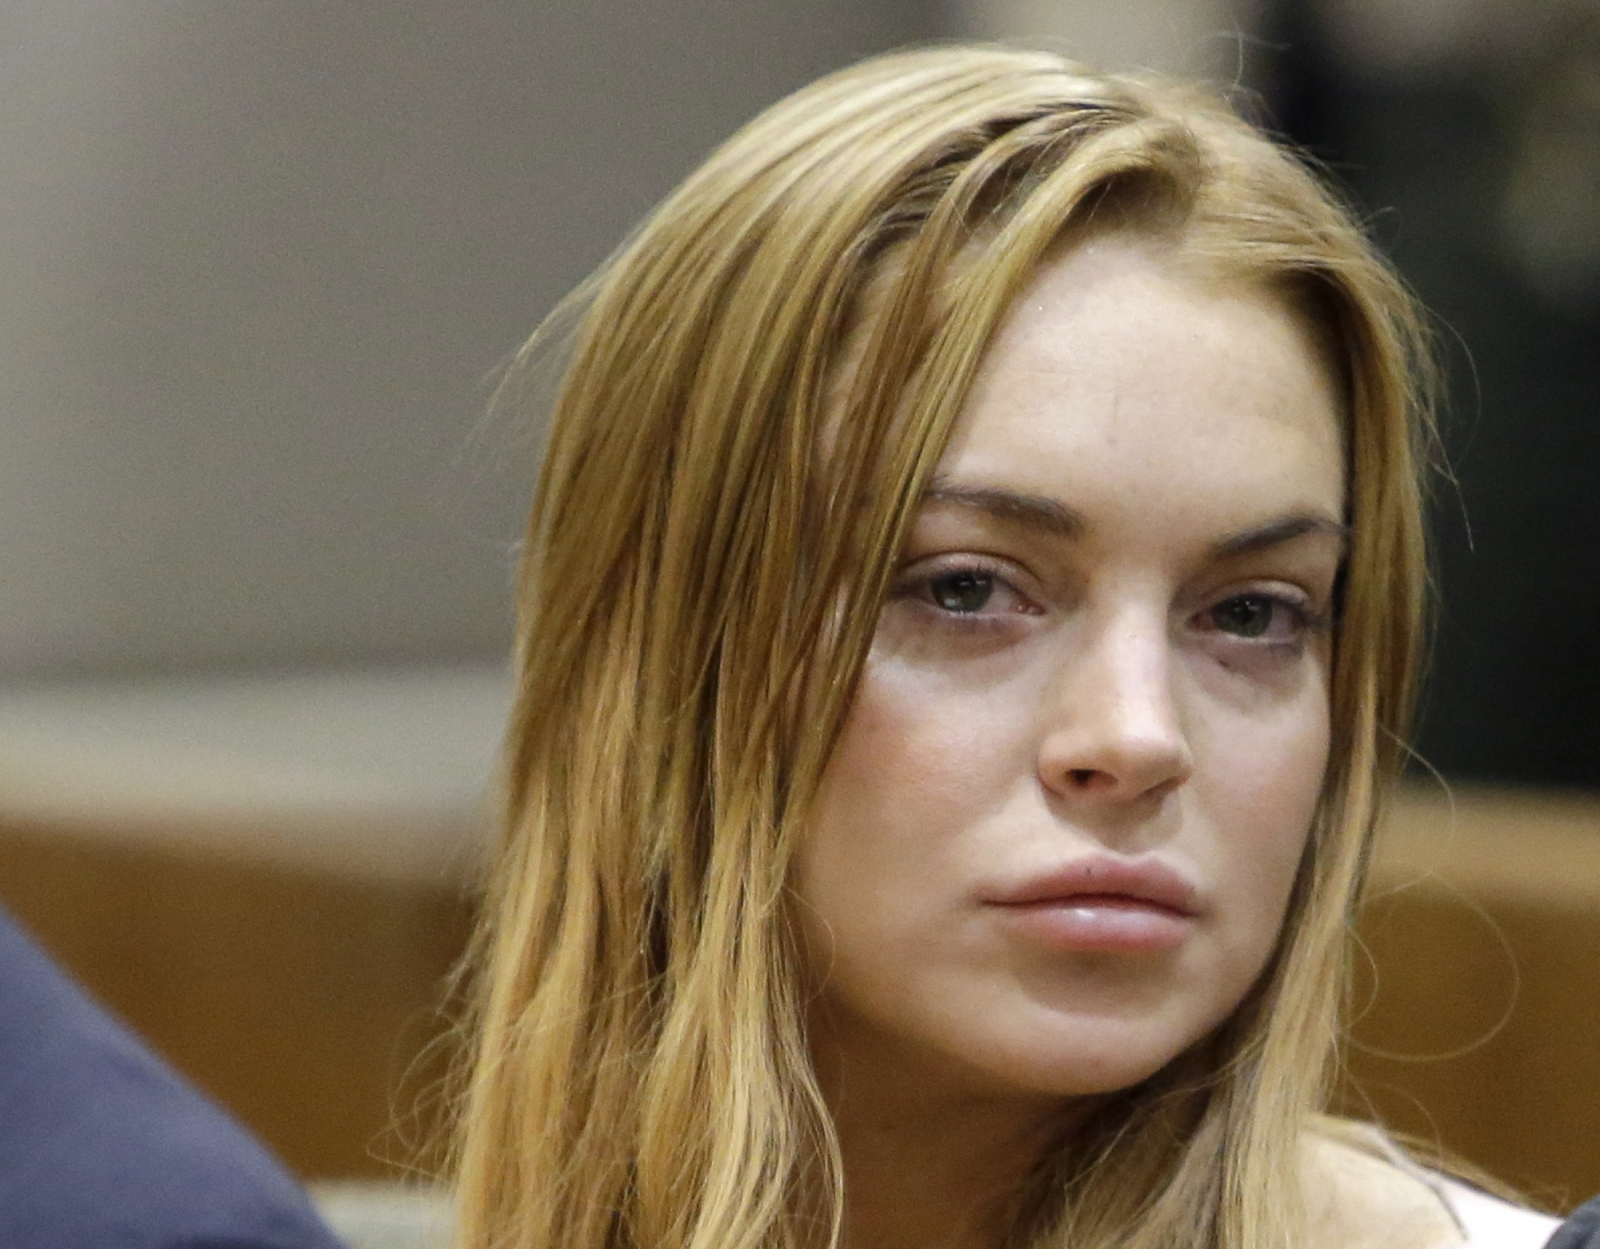 photo Pictures of lindsay lohan taking drugs and kissing paris hilton leaked